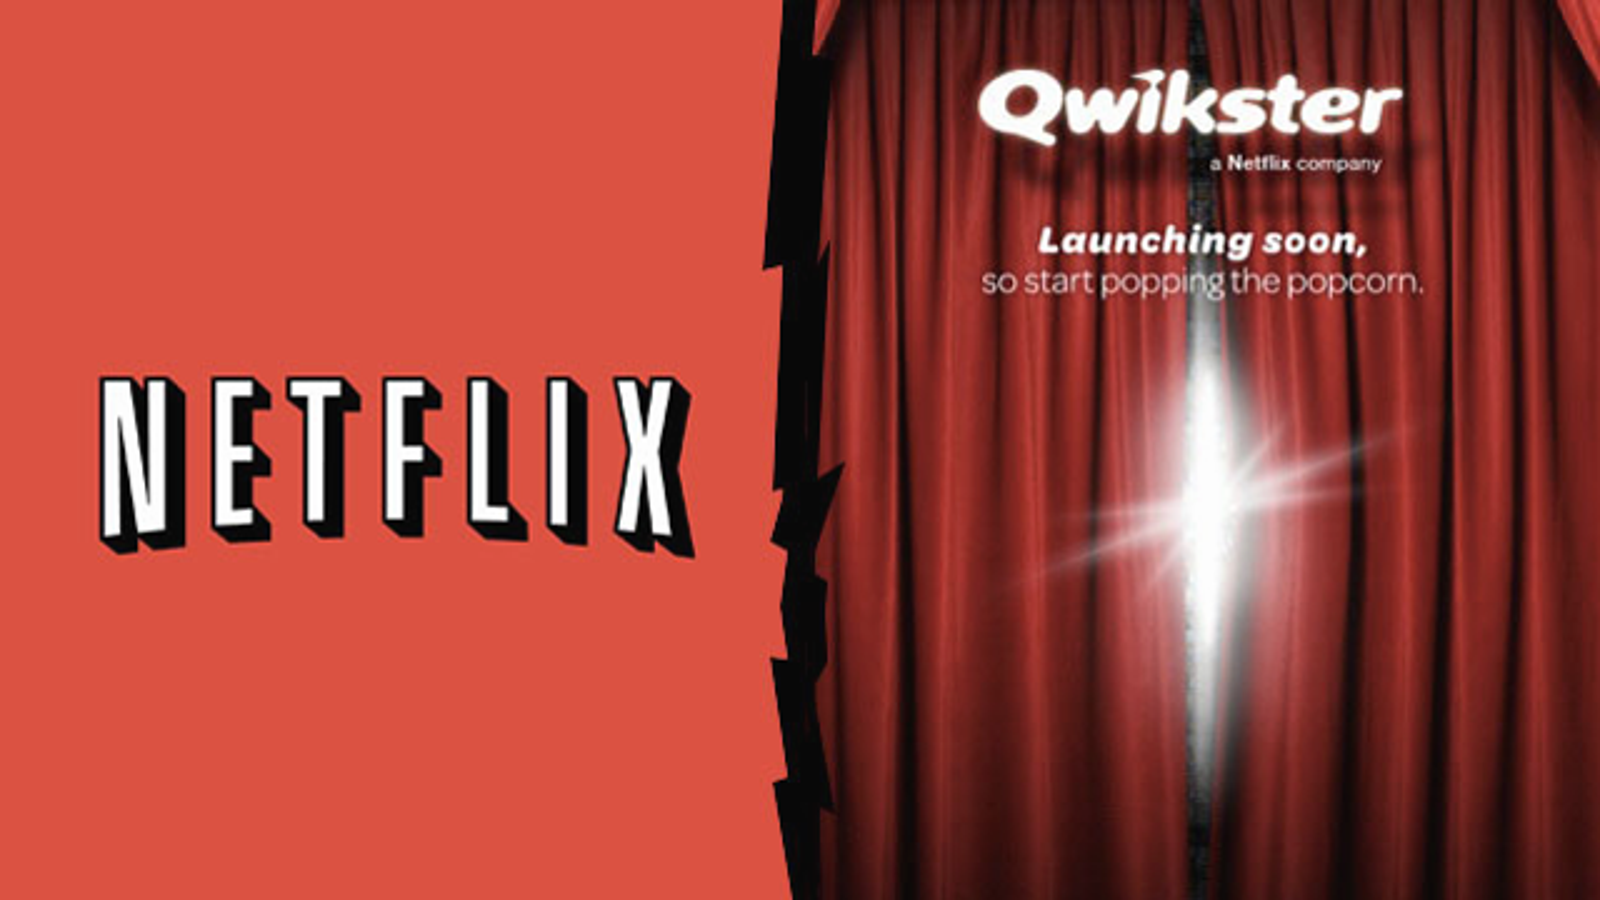 the reed hastings qwikster apology tour marches on